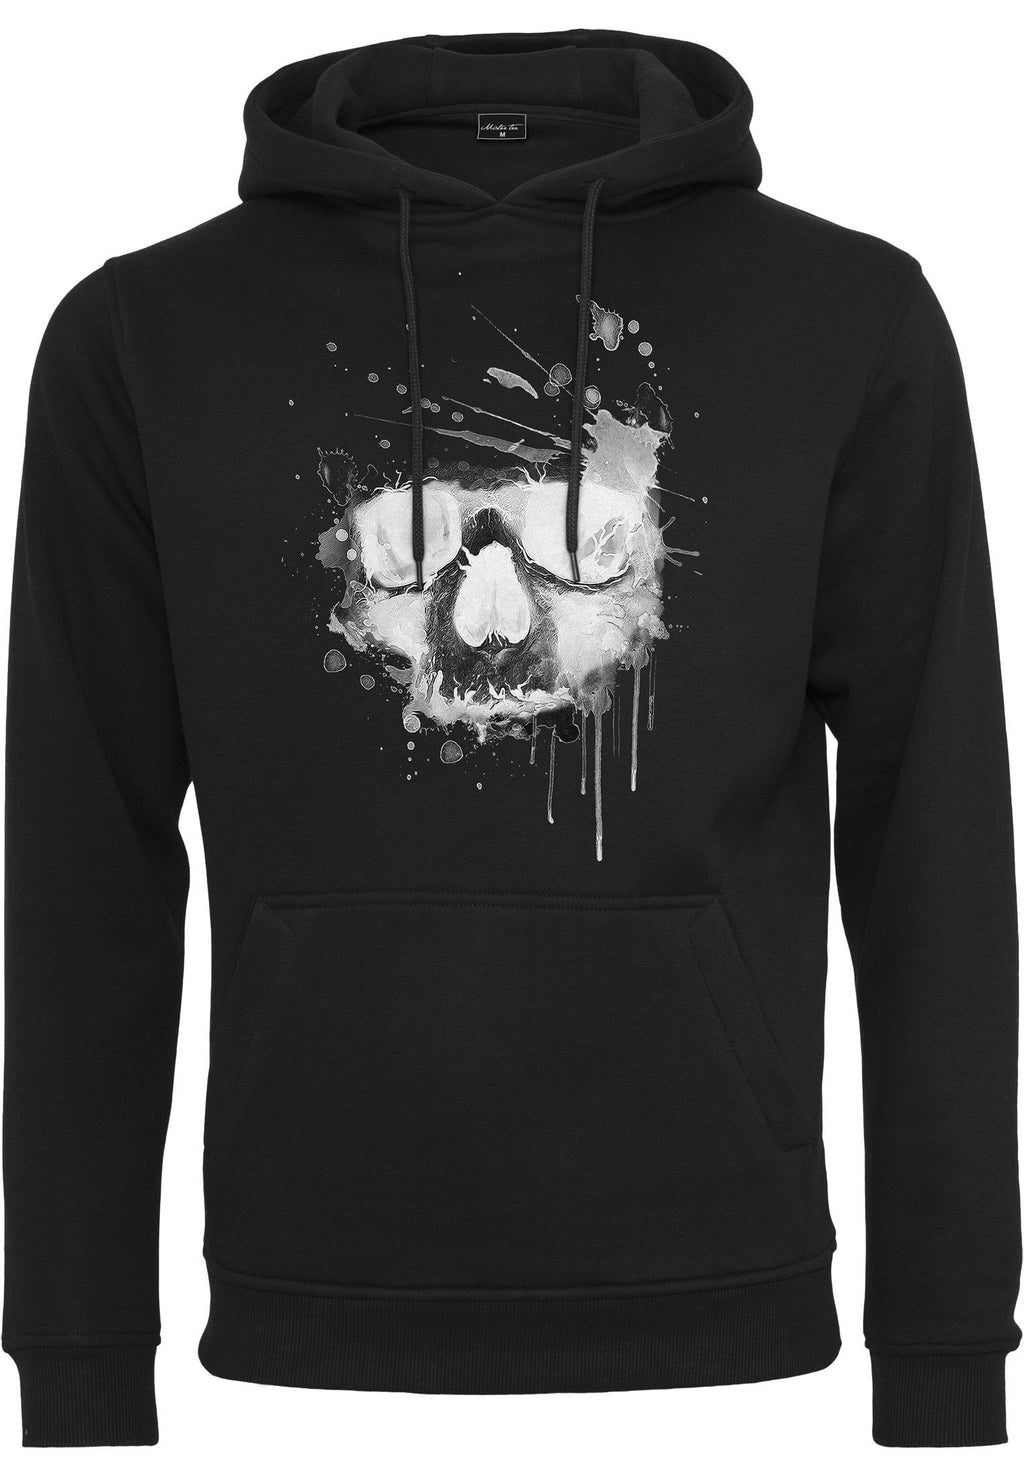 Waterpaint Skull Hoody - Black